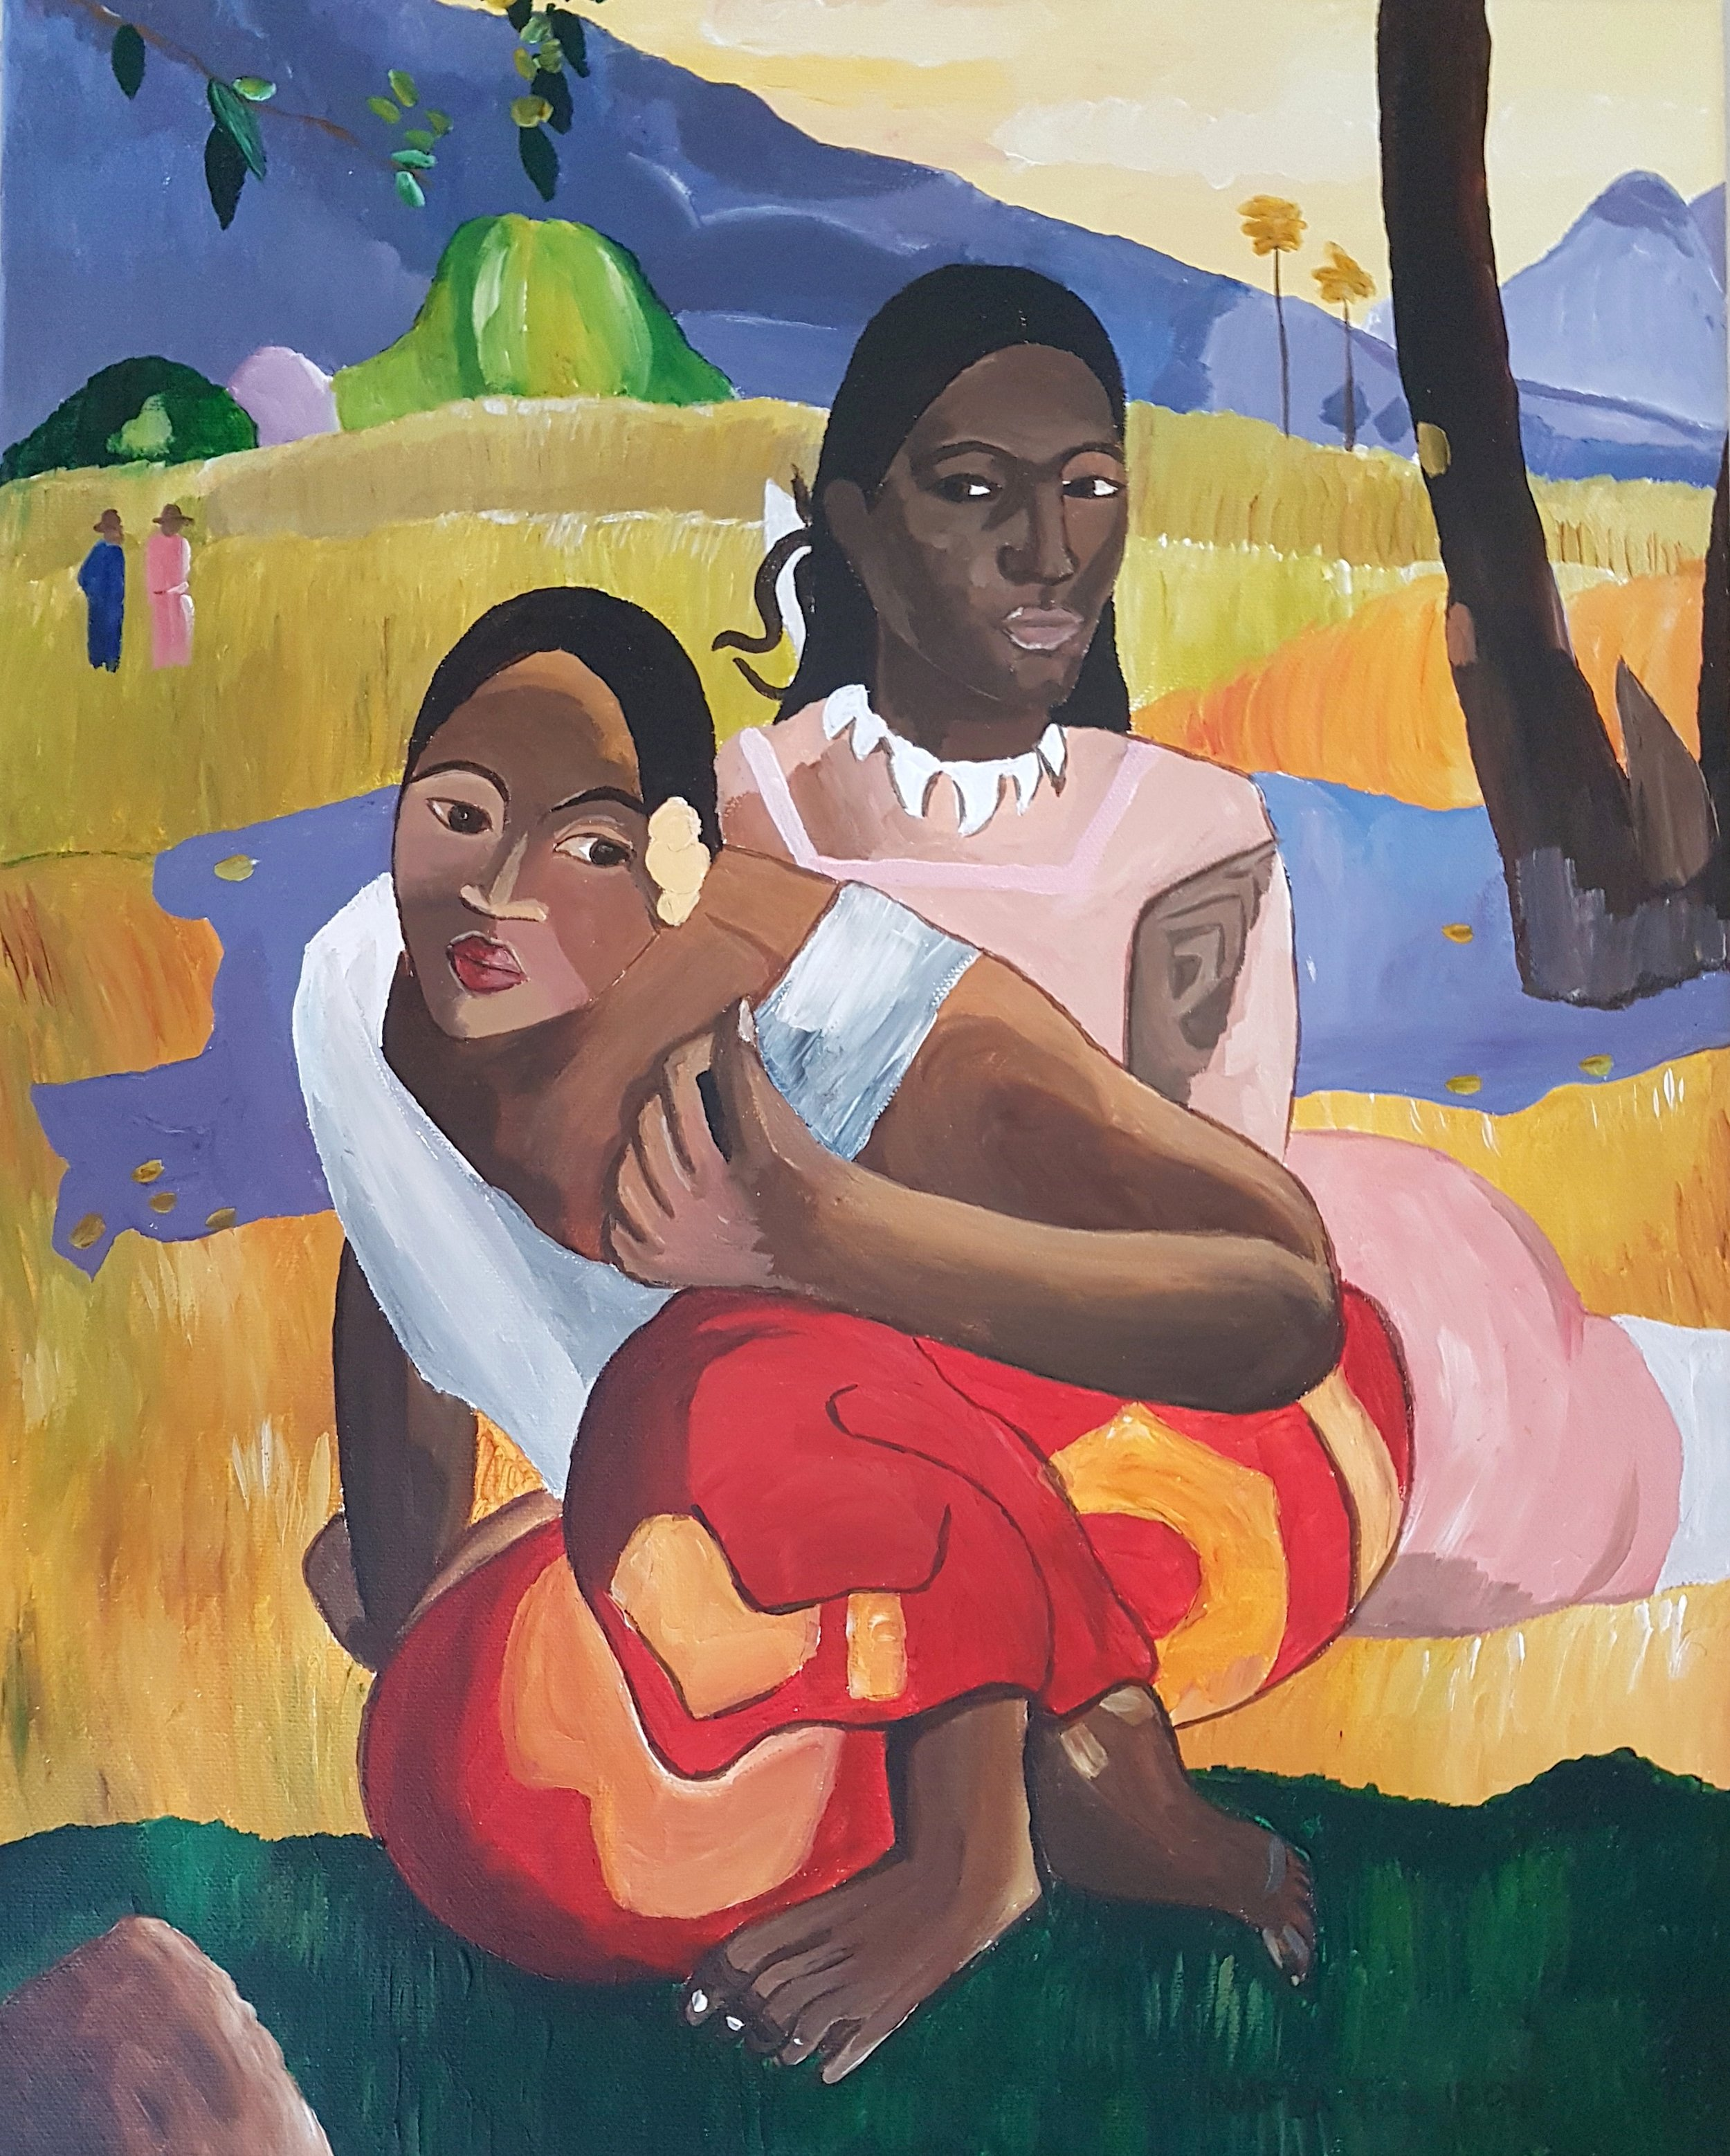 When will you Marry? by Gauguin